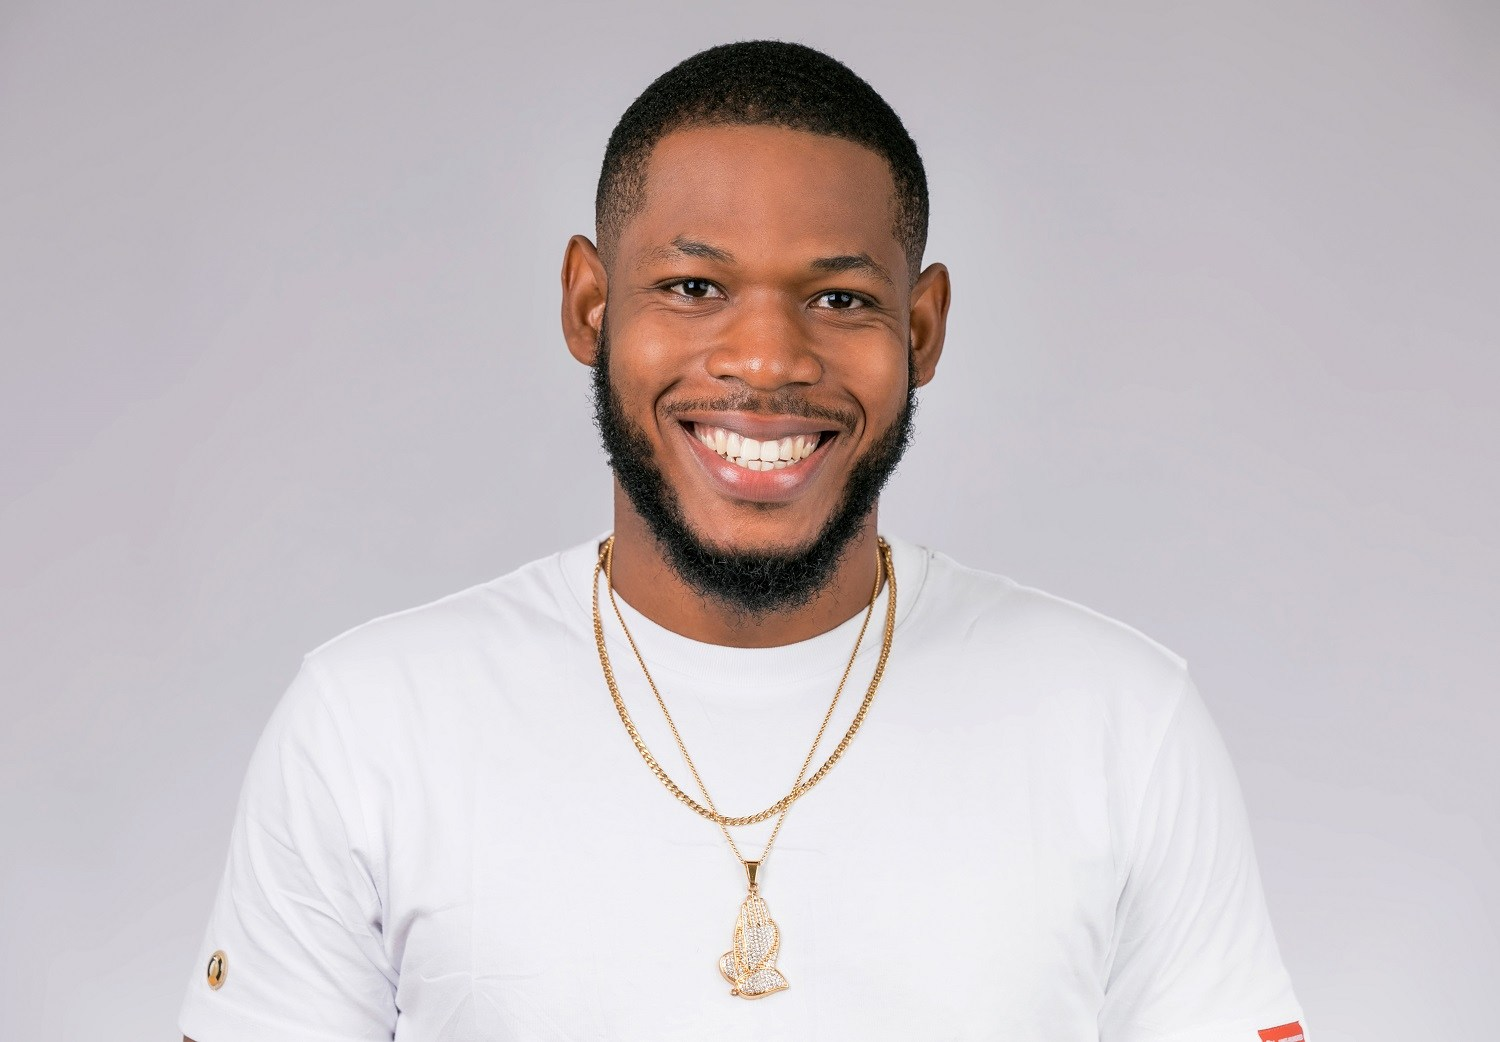 BBNaija Twist: Frodd emerges Ultimate Veto Power Holder